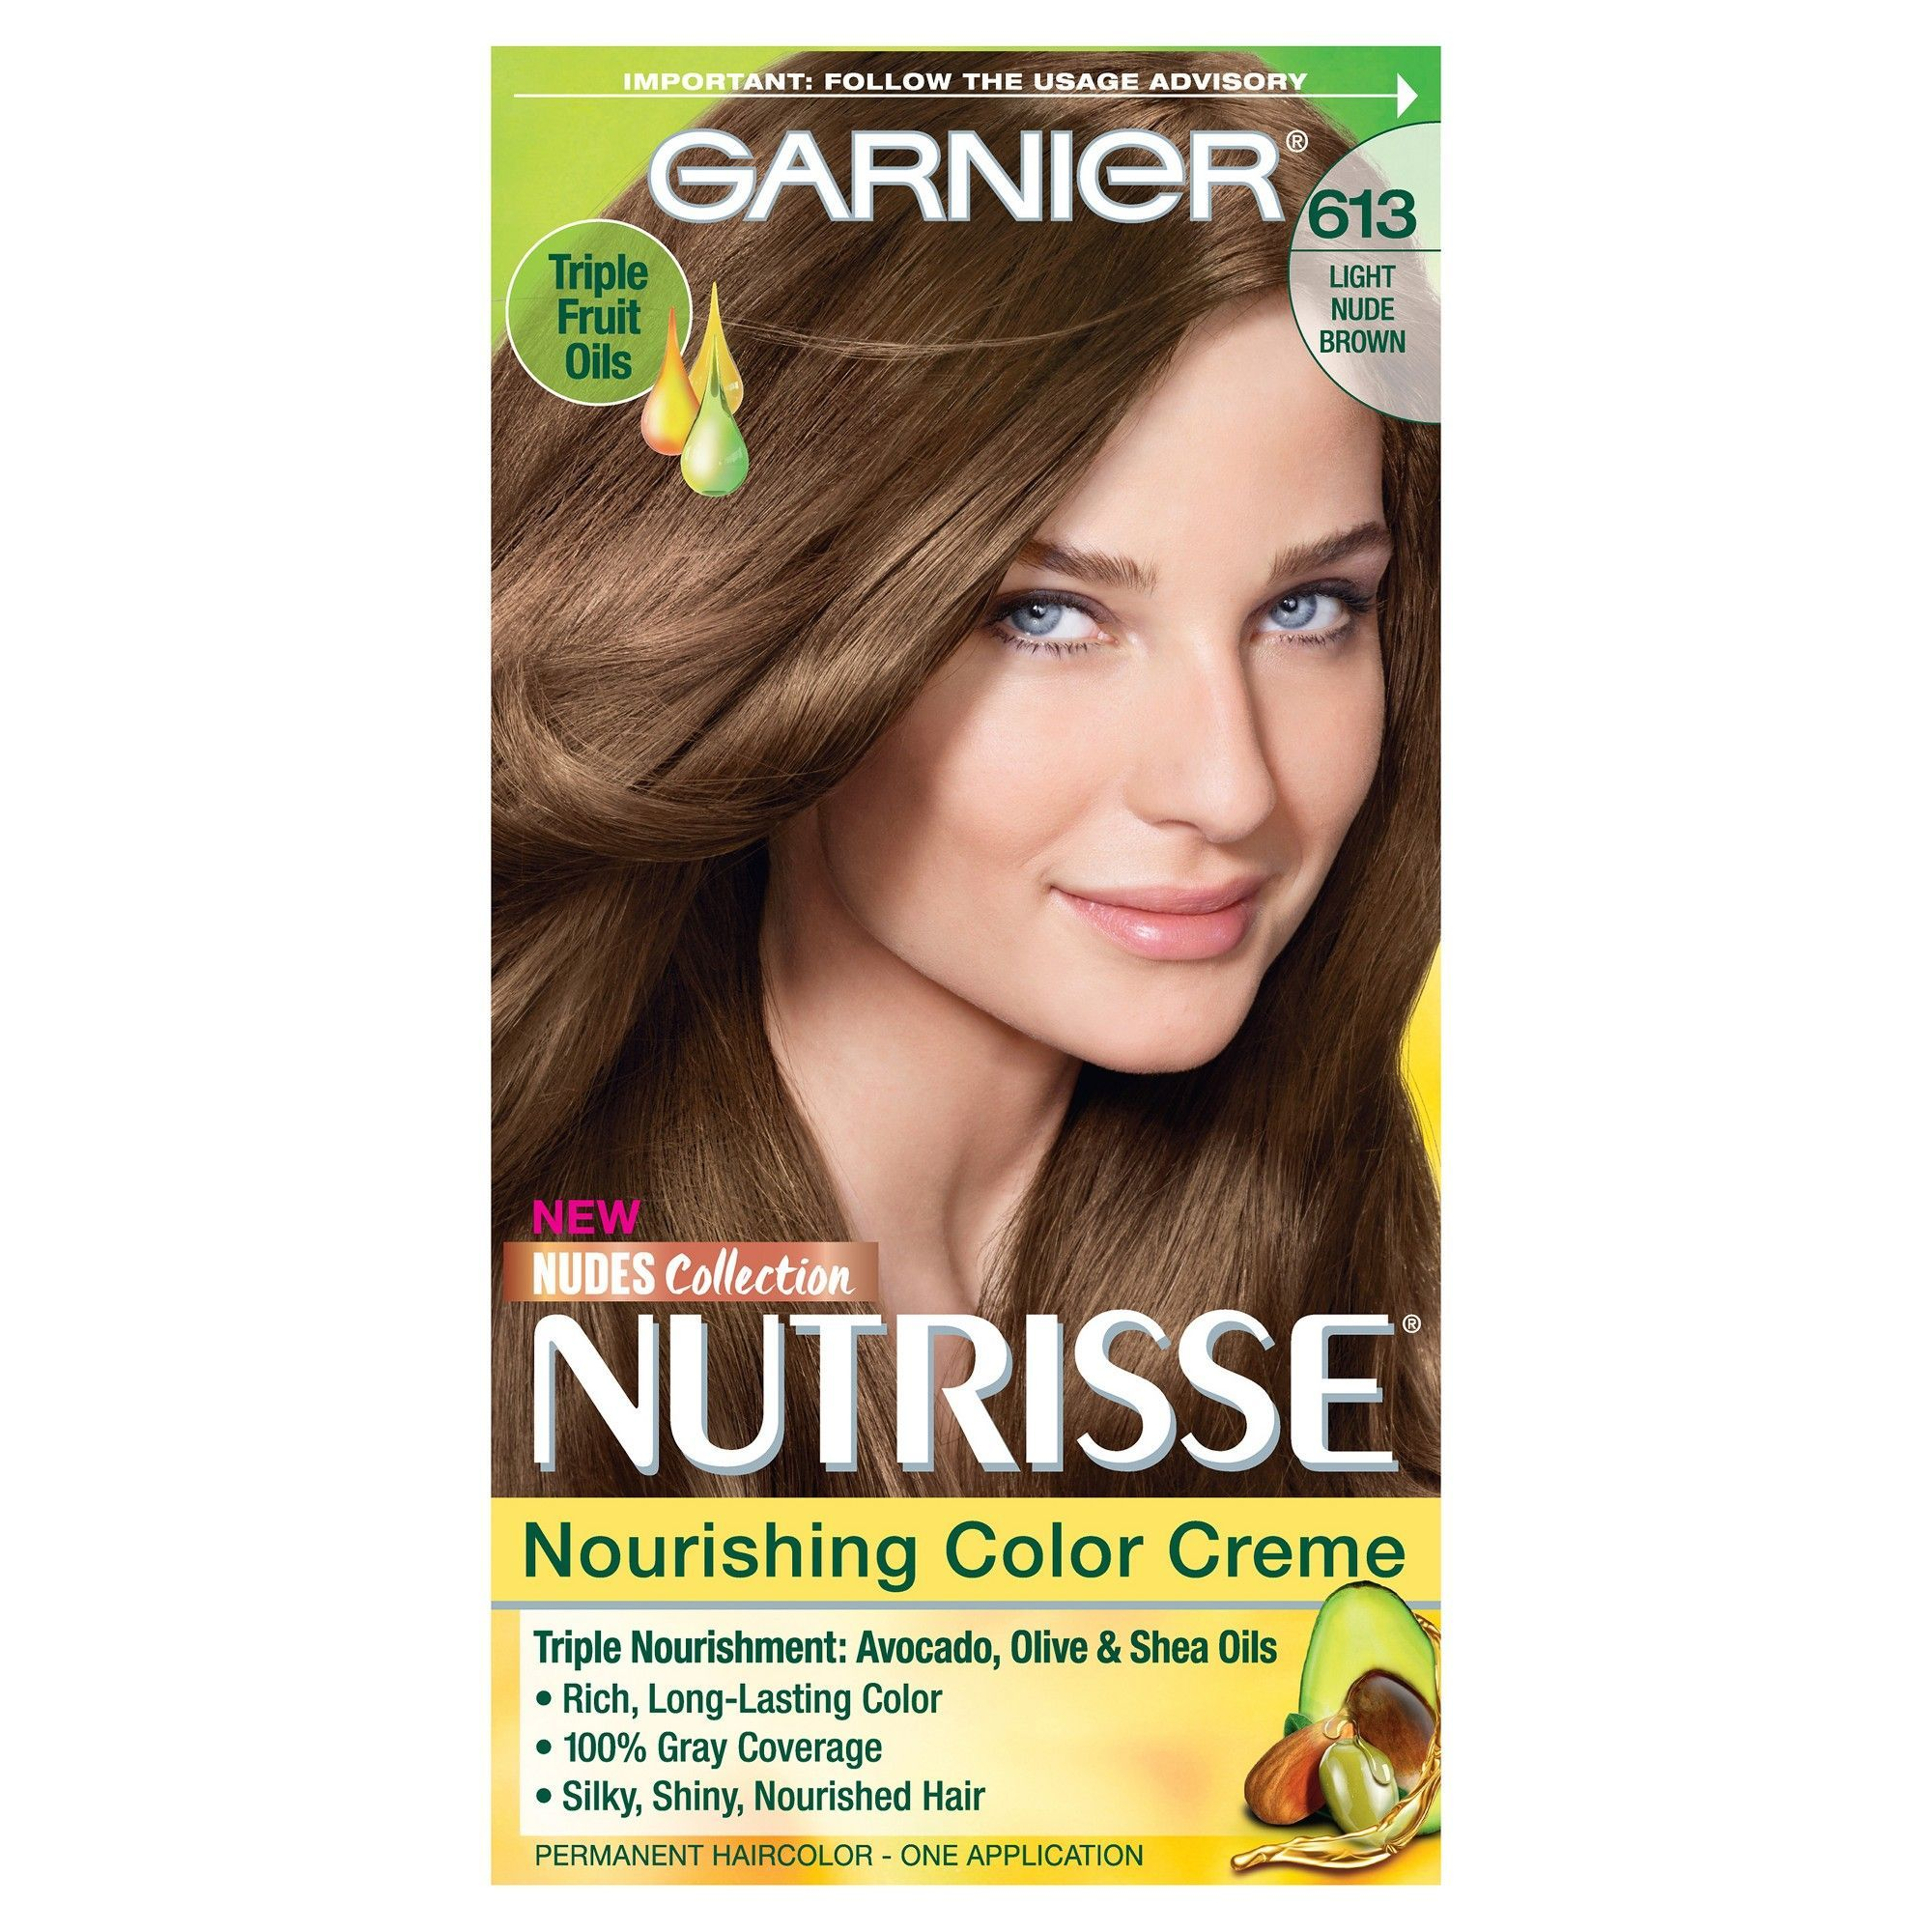 Garnier Nutrisse Nourishing Color Creme Light Nude Brown 613 613